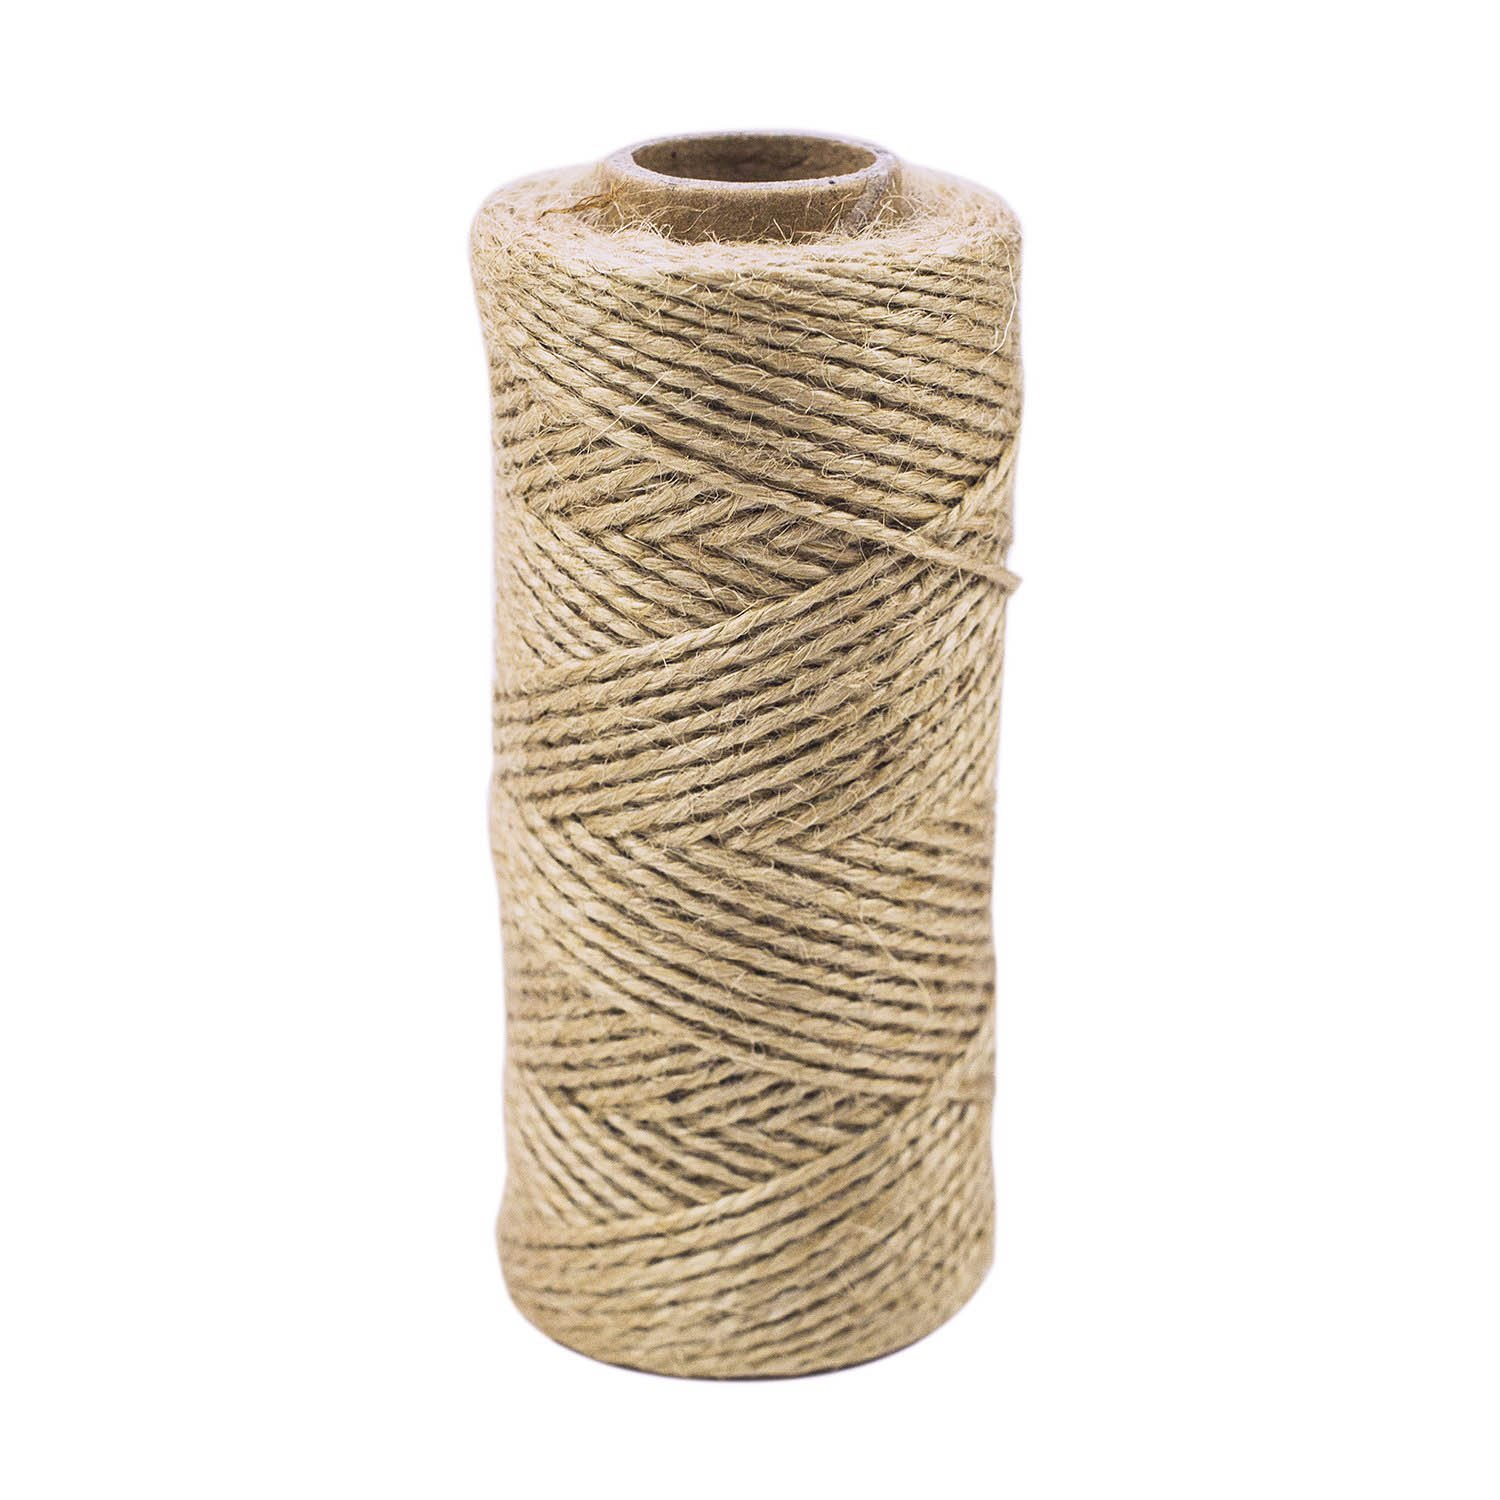 300 ft Heavy Duty Natural Color Twine Jute String for Industrial Packing Material Arts Crafts Gift Wrapping Garden Planting School Project Supplies